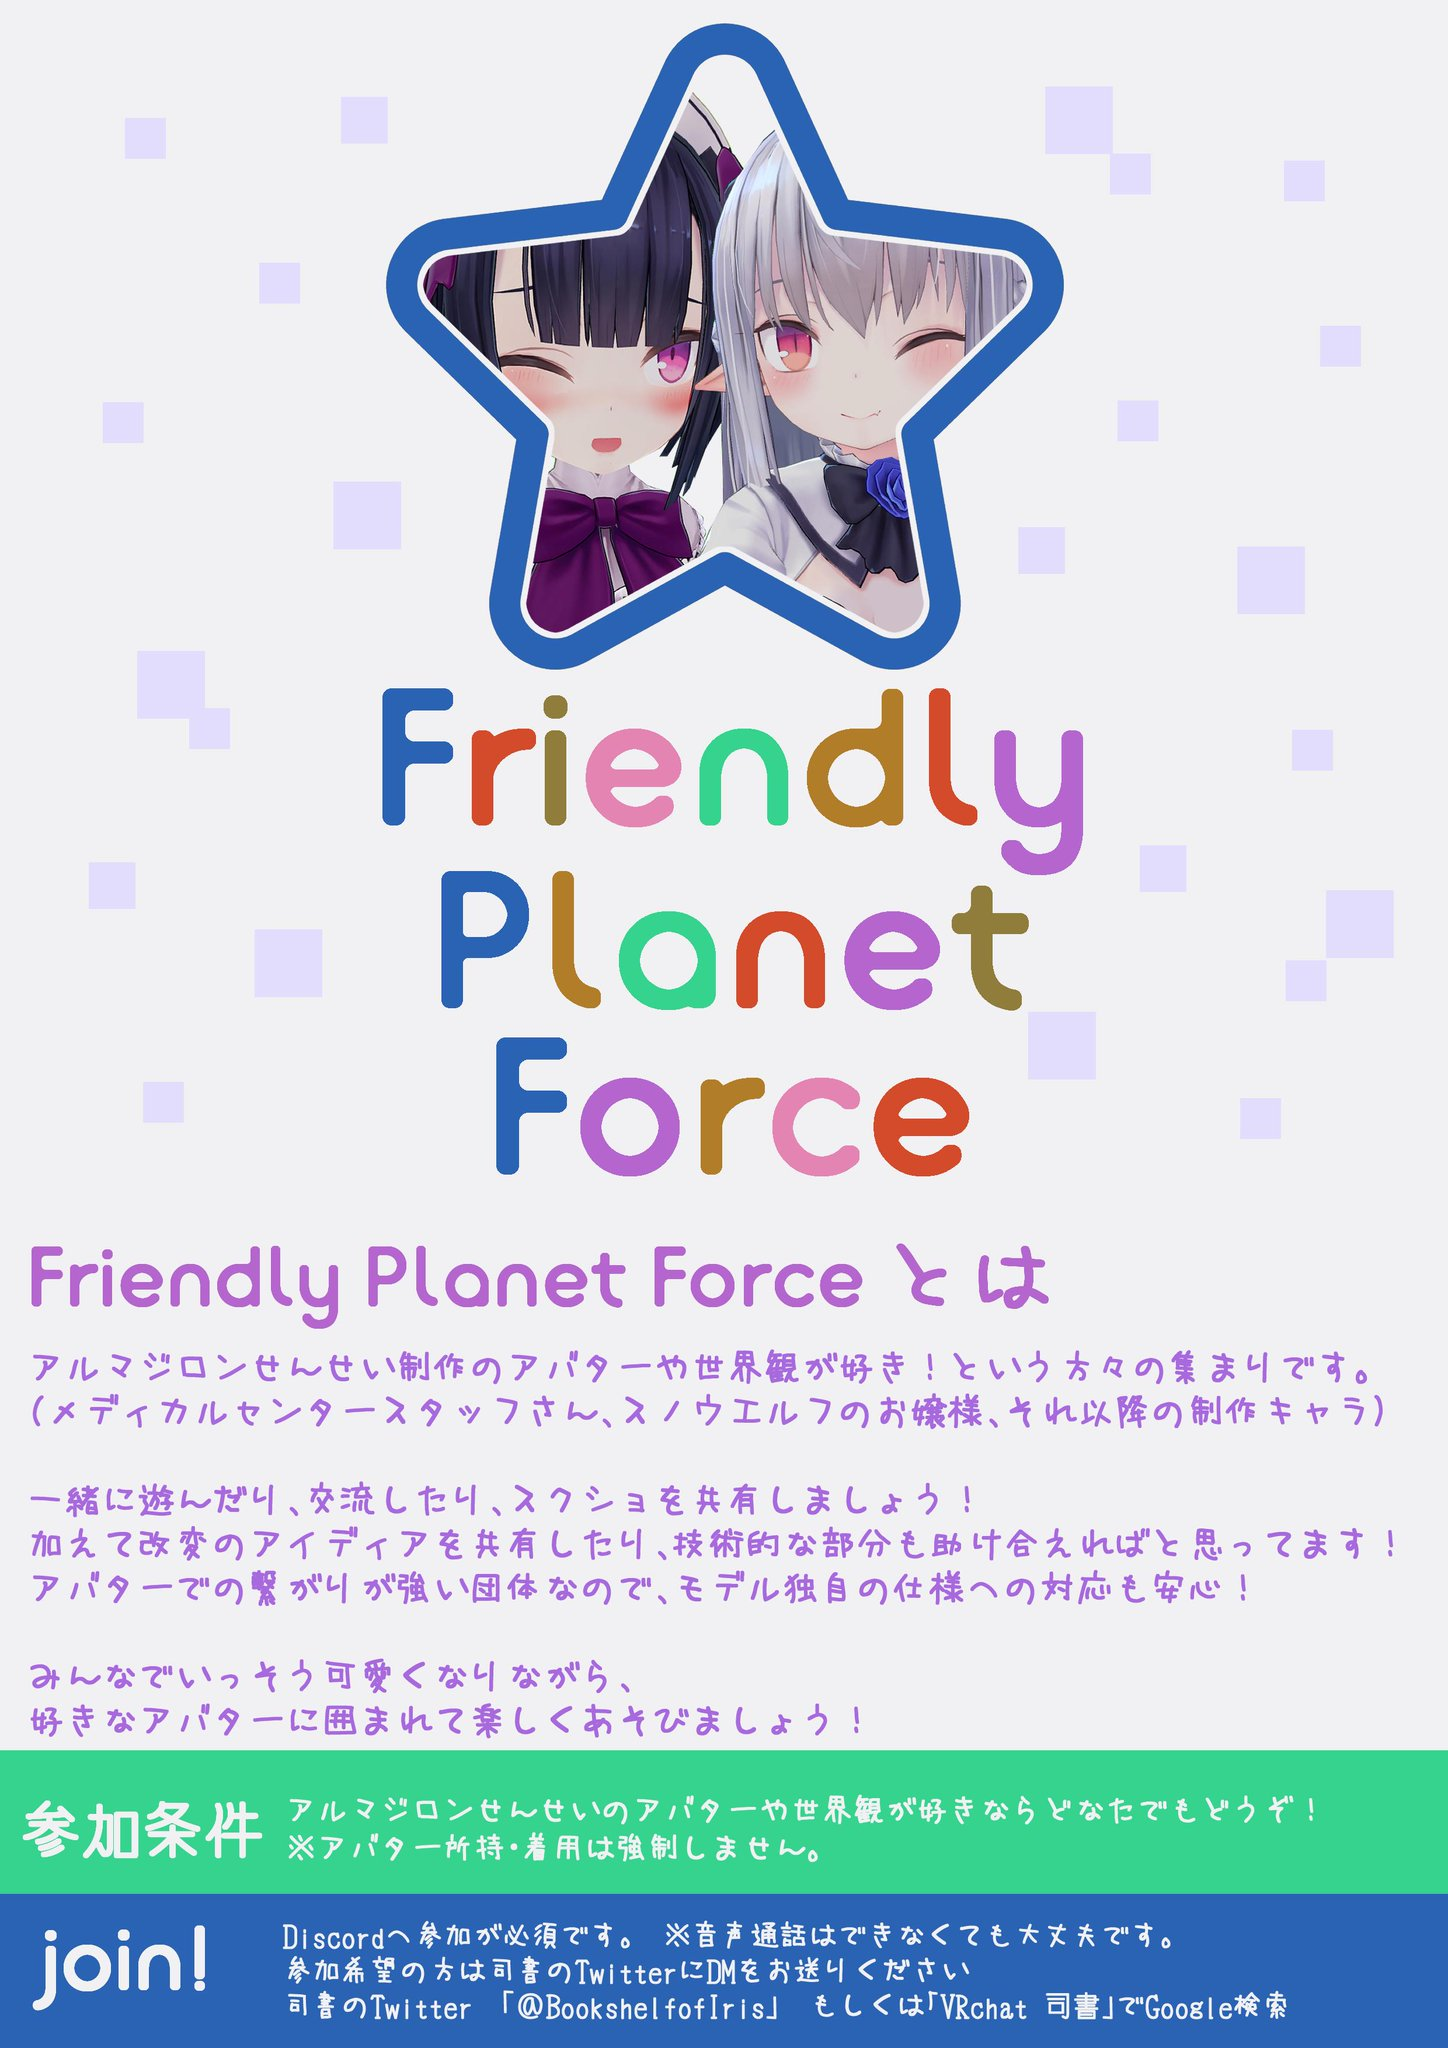 Friendly Planet Force